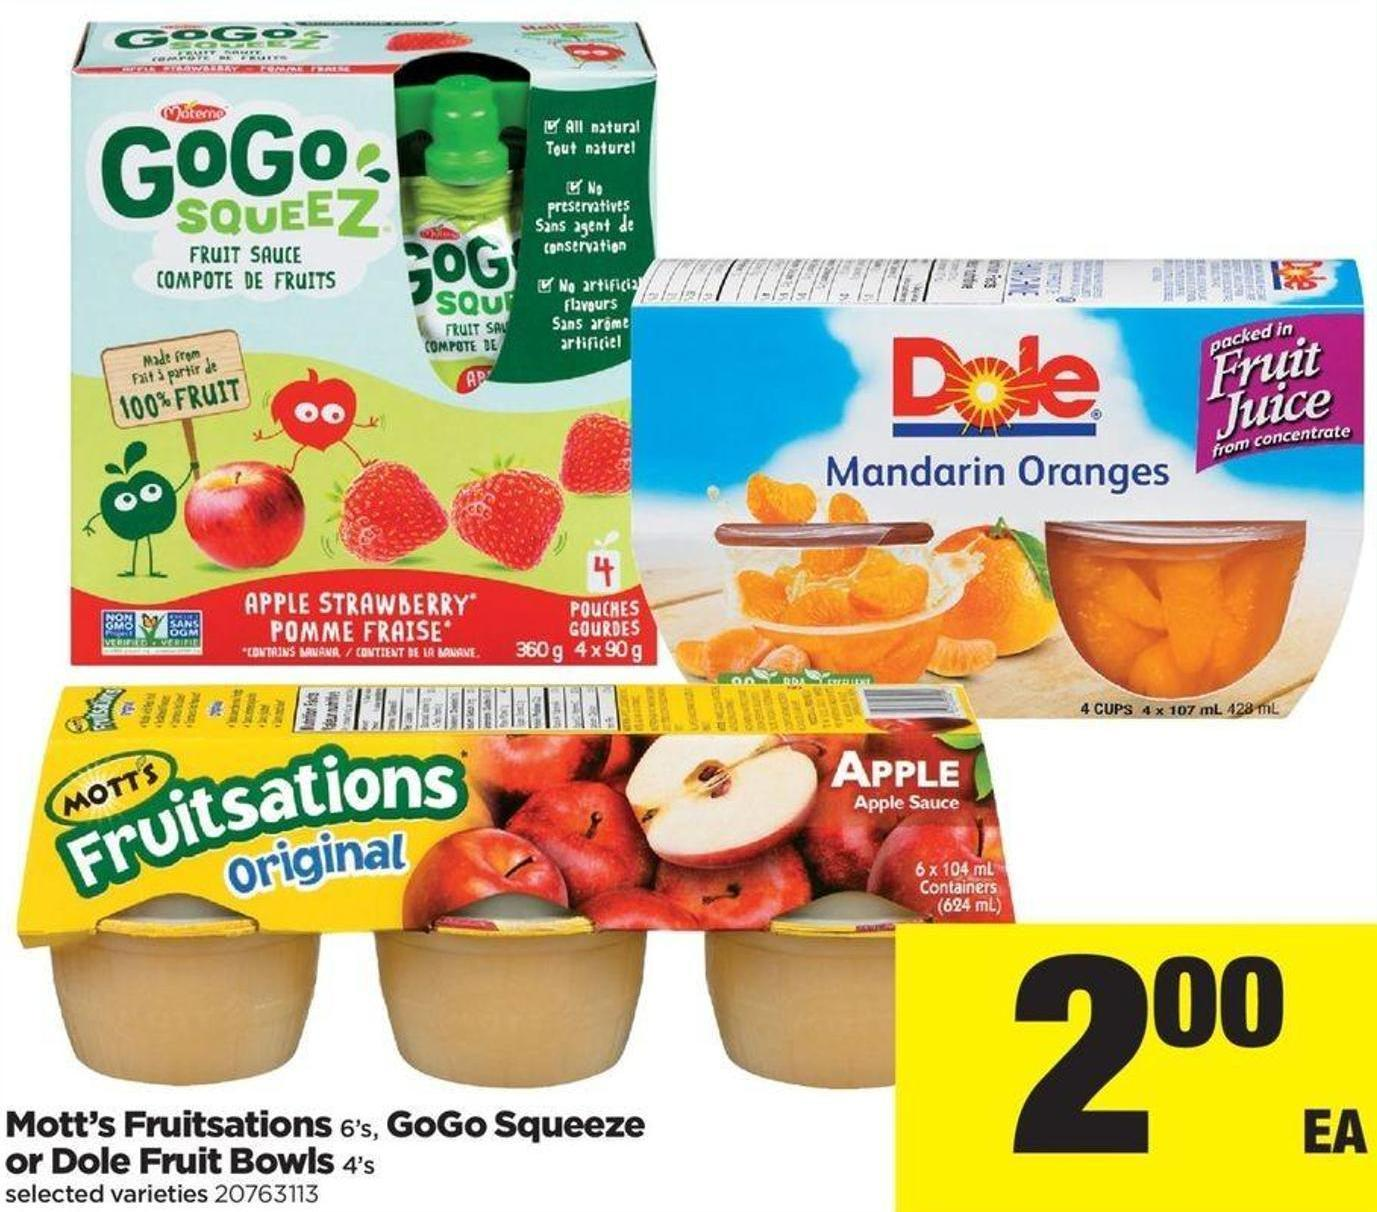 Mott's Fruitsations - 6's - Gogo Squeeze or Dole Fruit Bowls - 4's